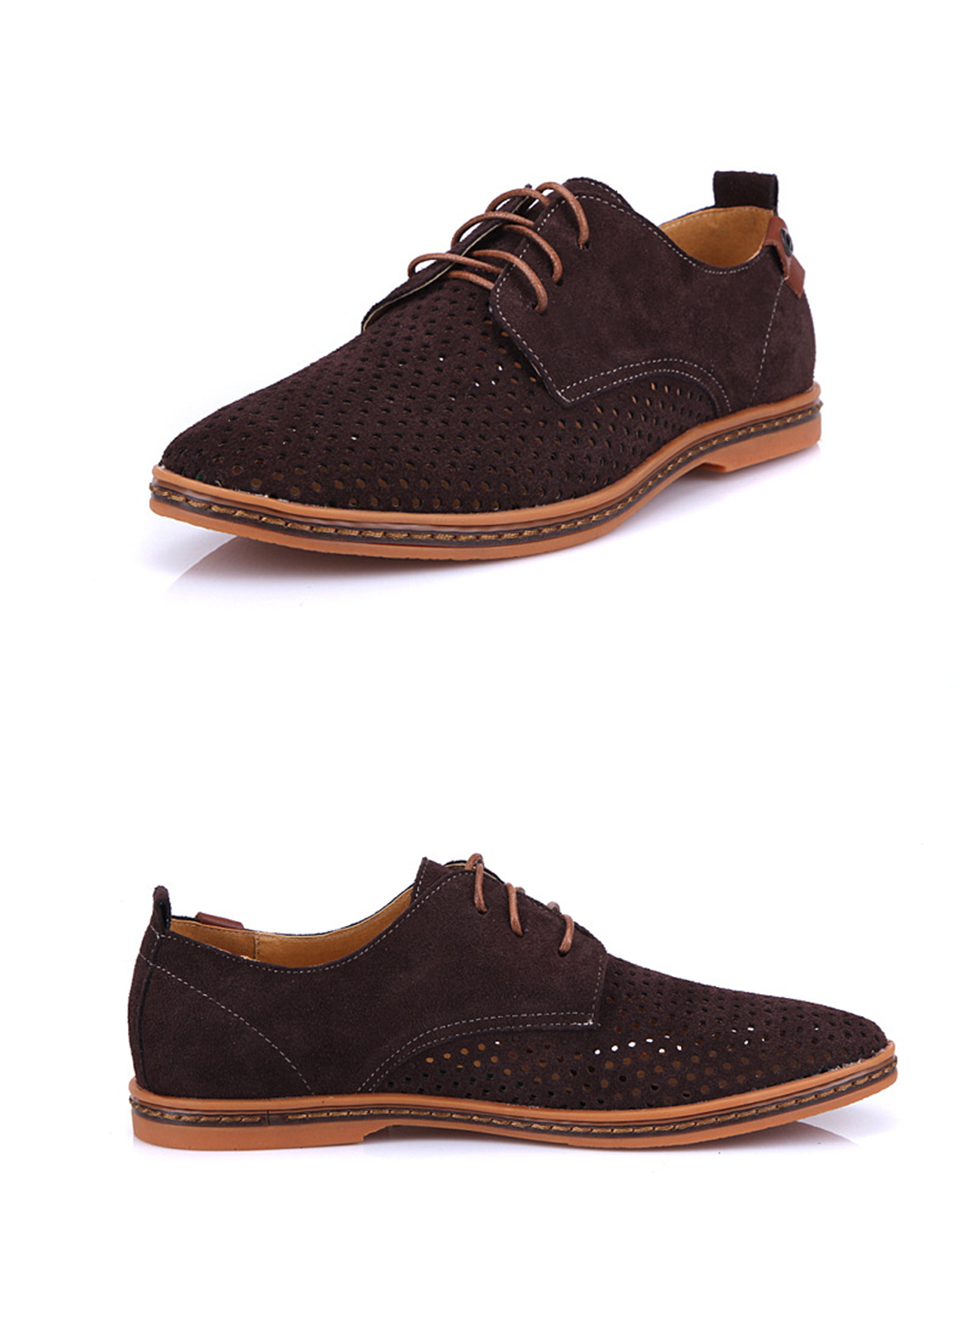 6ab920bed9 PACNETO Luxury Brand Hollow Suede Shoes Men Casual Lace Up Flats ...